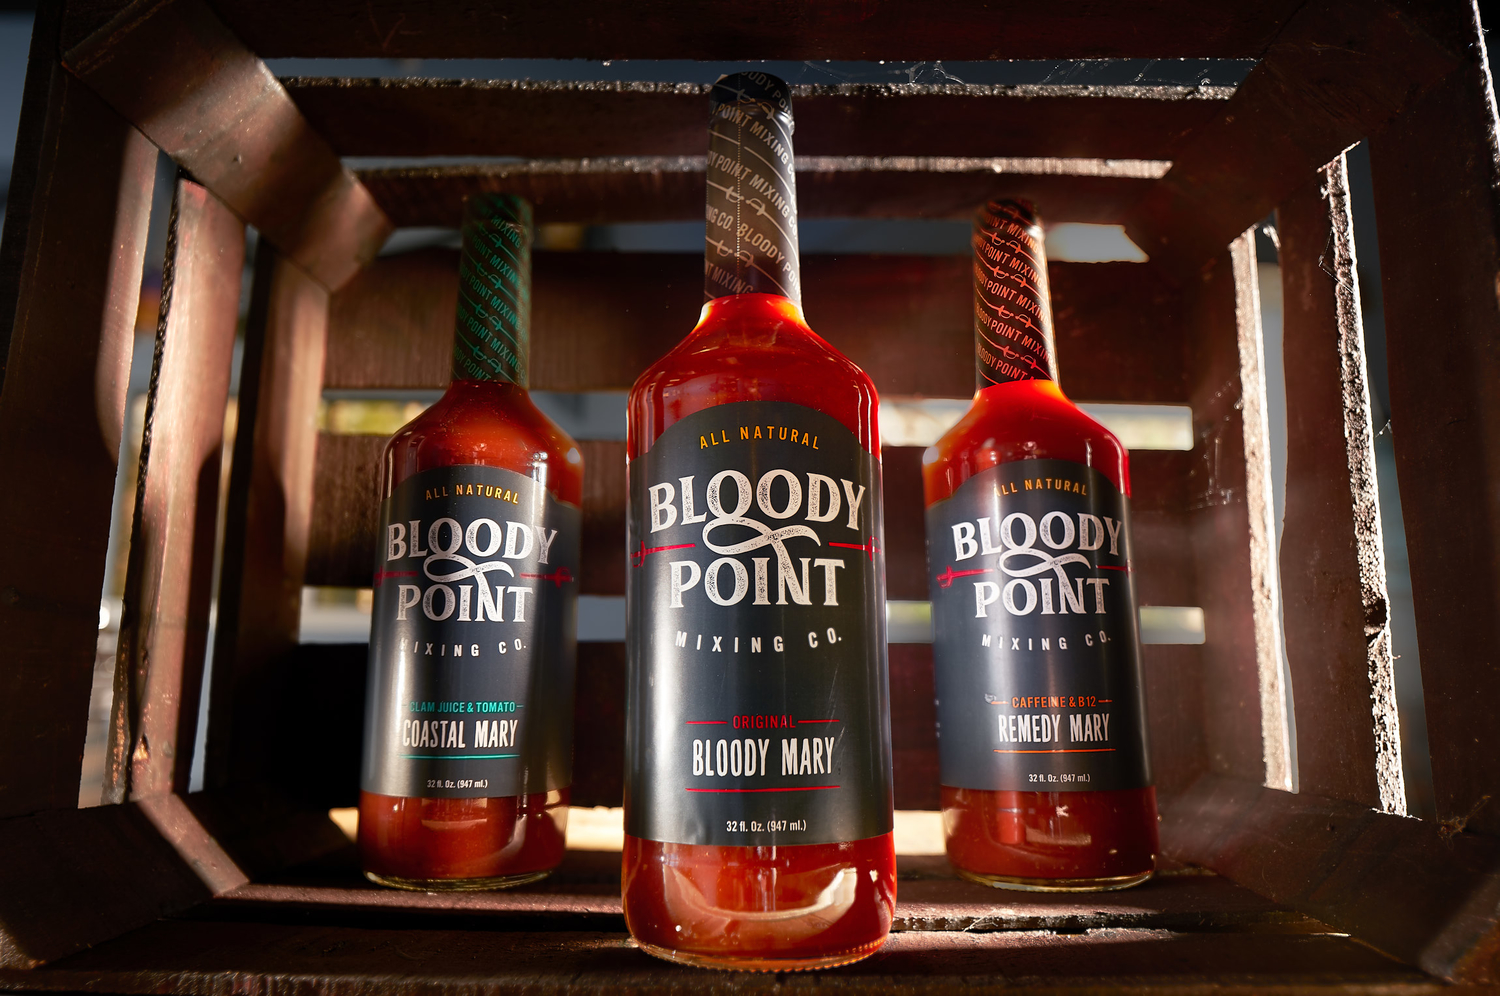 Bloody Point Food Photography, Behind the Scenes